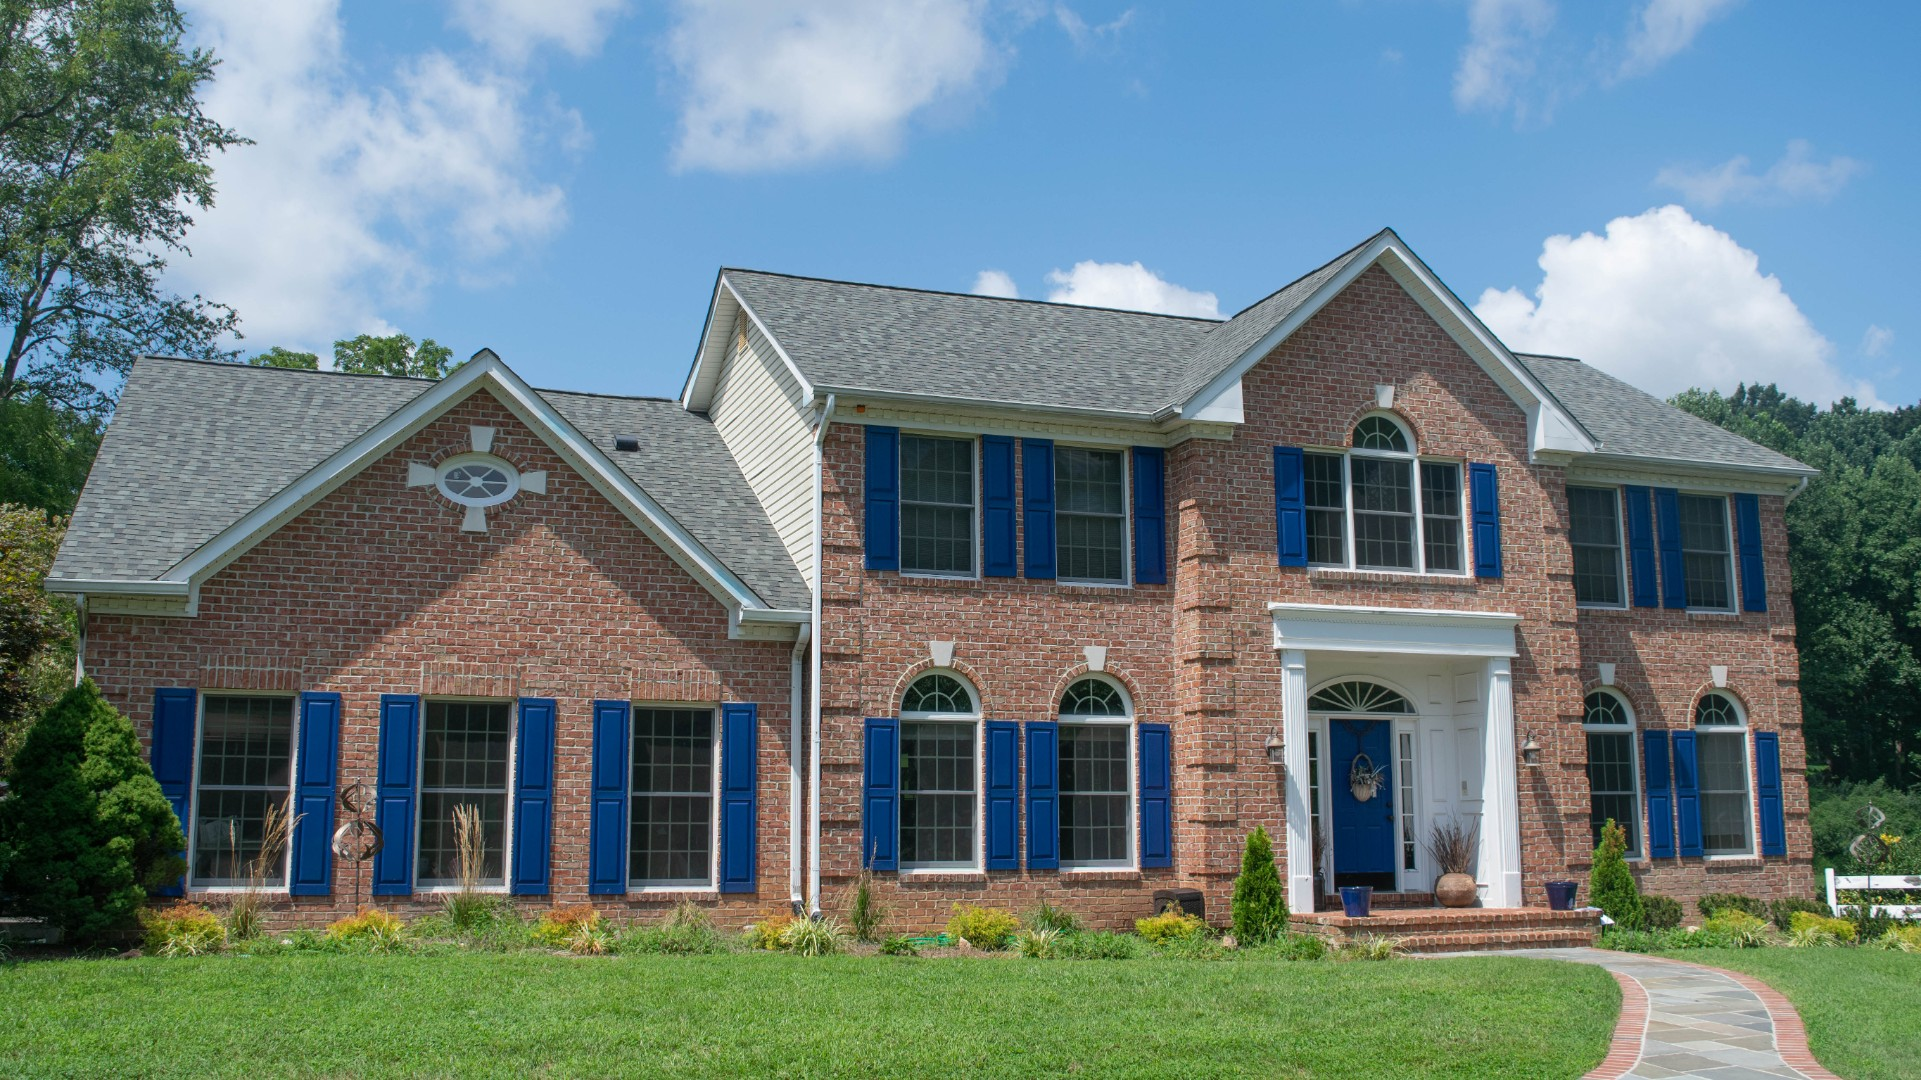 SmartRoof - Residential, Commercial Hainesport NJ Roofing Contractors